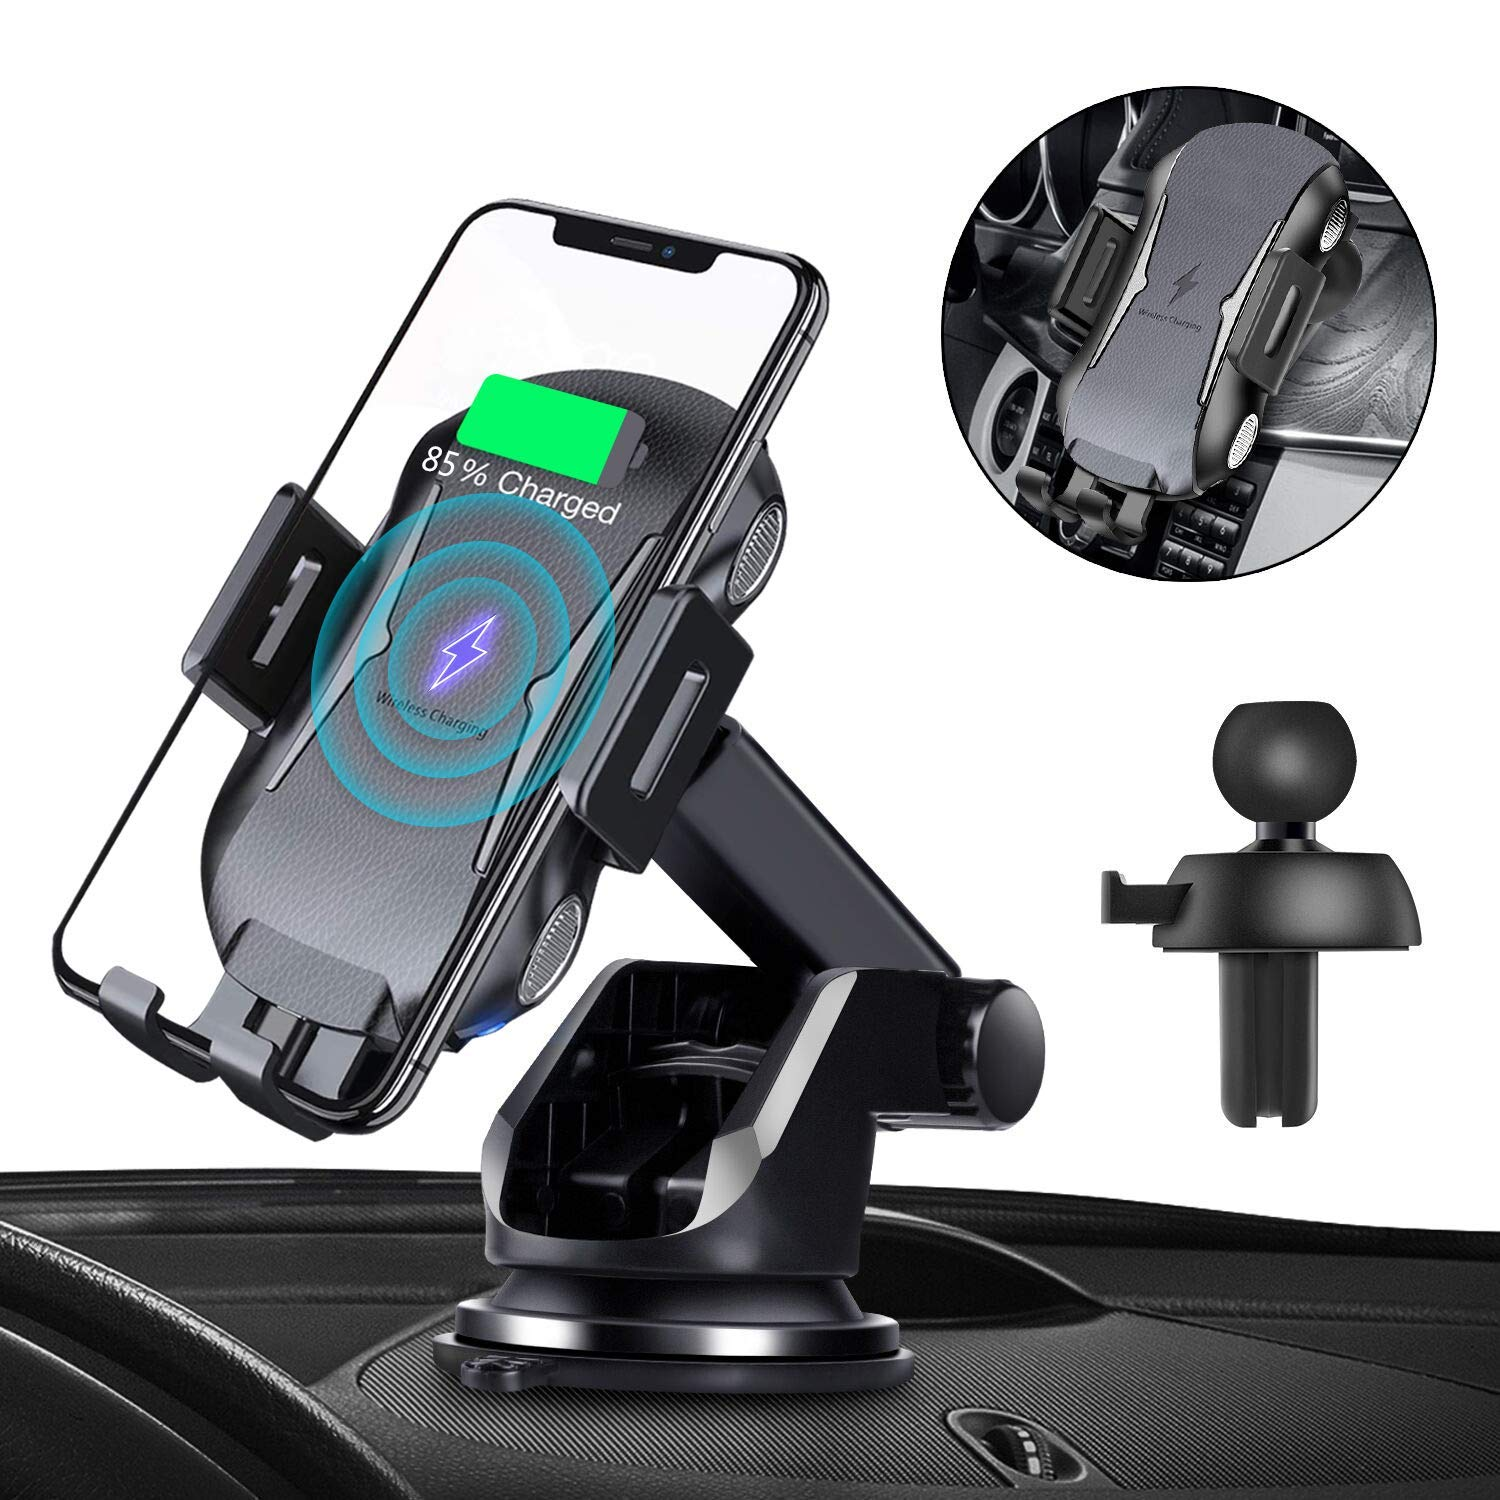 Automatic Clamping Qi Wireless Car Charger, SANCEON 10W/7.5W Fast Charger Car Mount Phone Holder for Air Vent Dashboard Compatible with iPhone Xs/Xs Max/XR/X/8/8Plus, Samsung Galaxy S10/S10+/S9/S9+/S8 by SANCEON